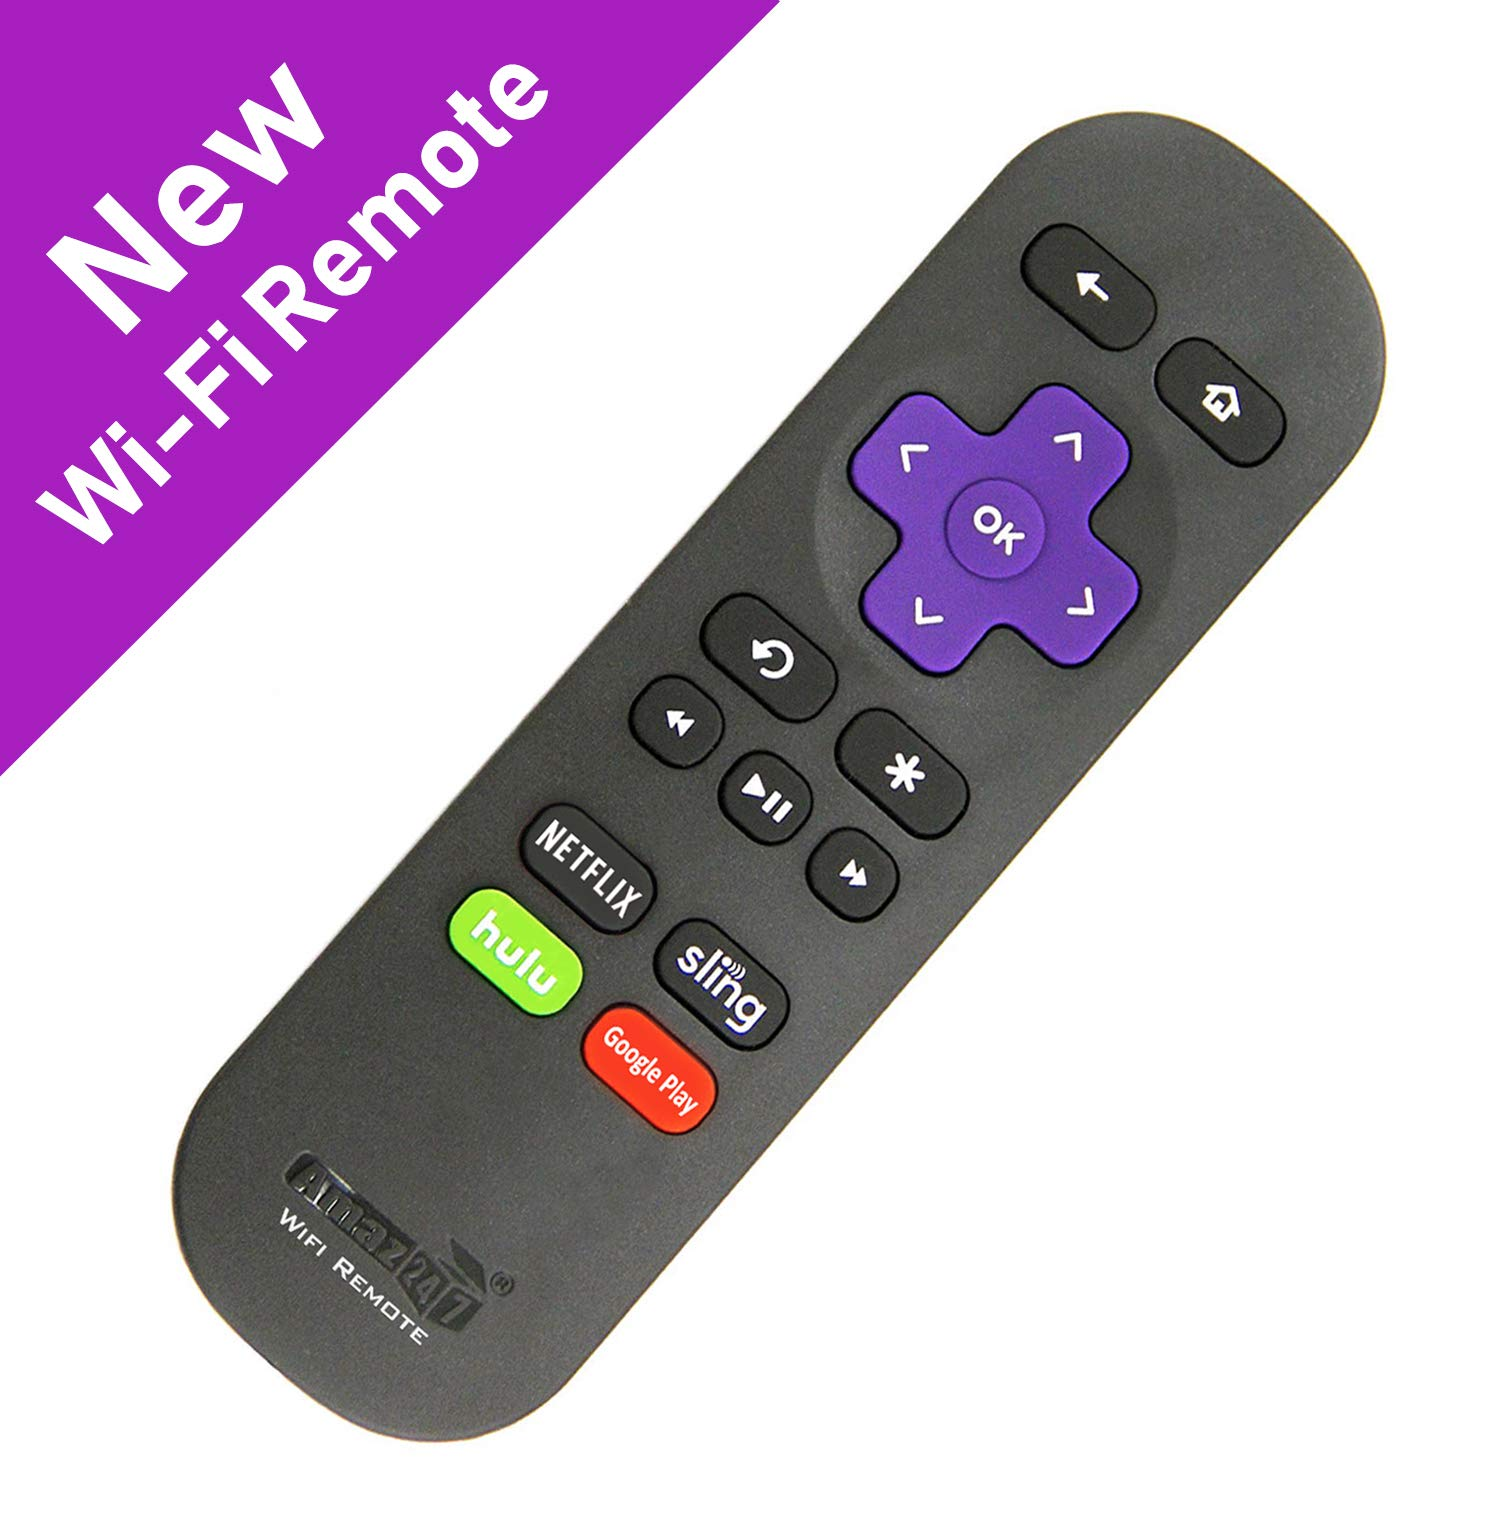 Amaz247 Point-Anywhere Wi-Fi Remote Pairing with Roku Stick, Stick+, Roku Premiere, Premiere+, Roku Ultra, Roku 2,3,4; Replace Roku Stick Remote RC80 by Amaz247